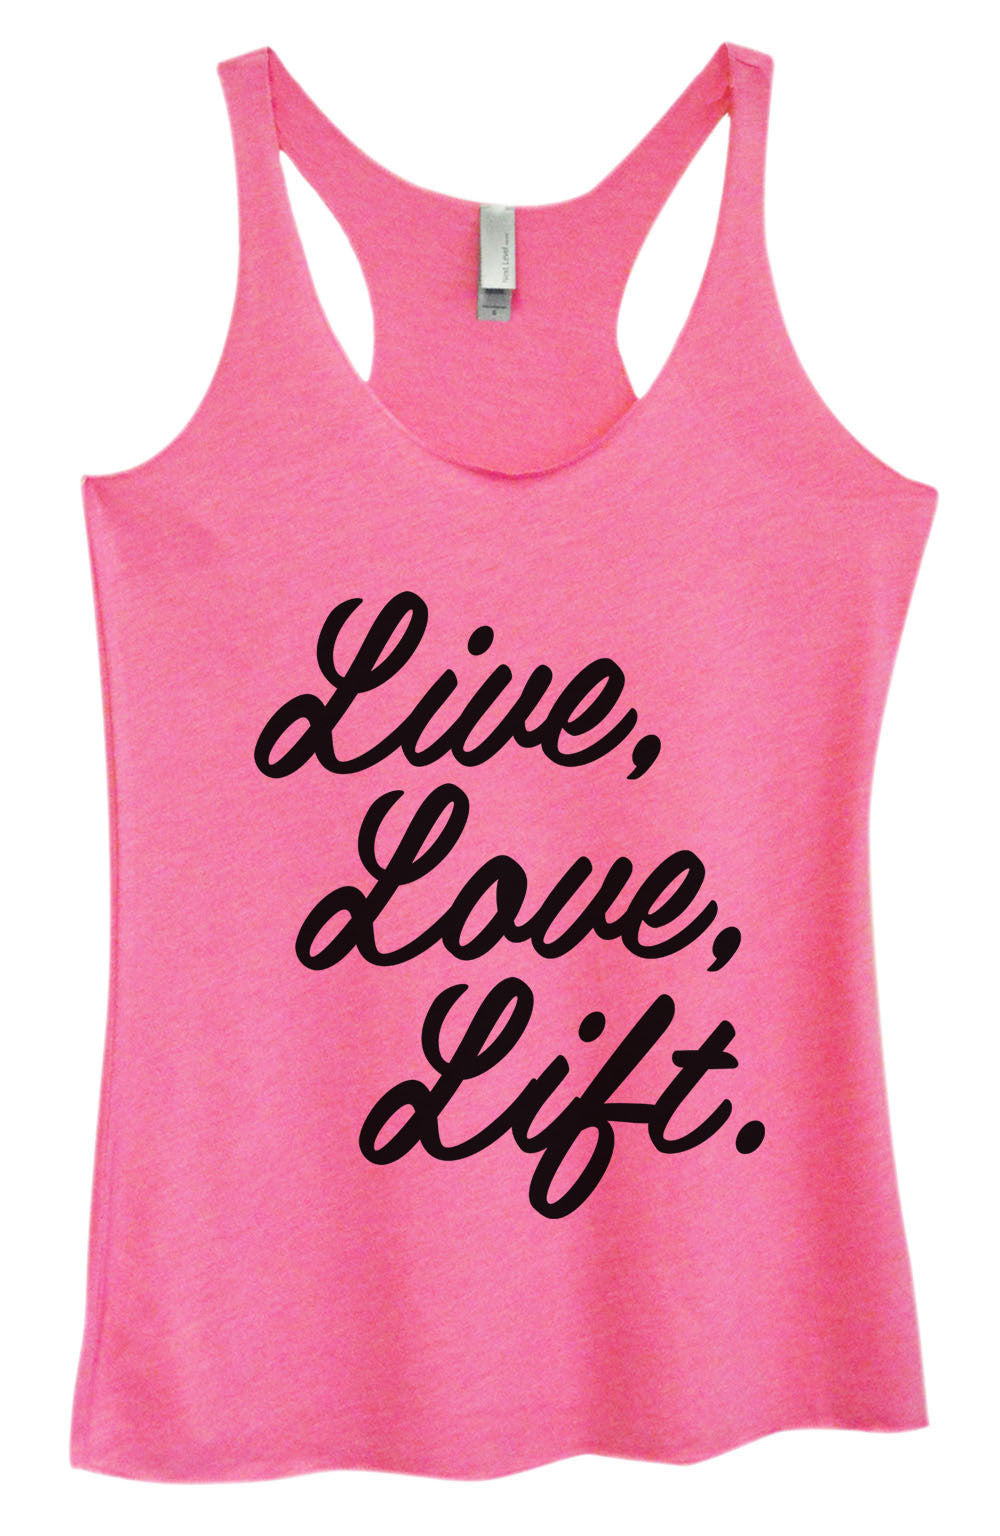 Womens Fashion Triblend Tank Top - Live, Love, Life. - Tri-1456 - Funny Shirts Tank Tops Burnouts and Triblends  - 3